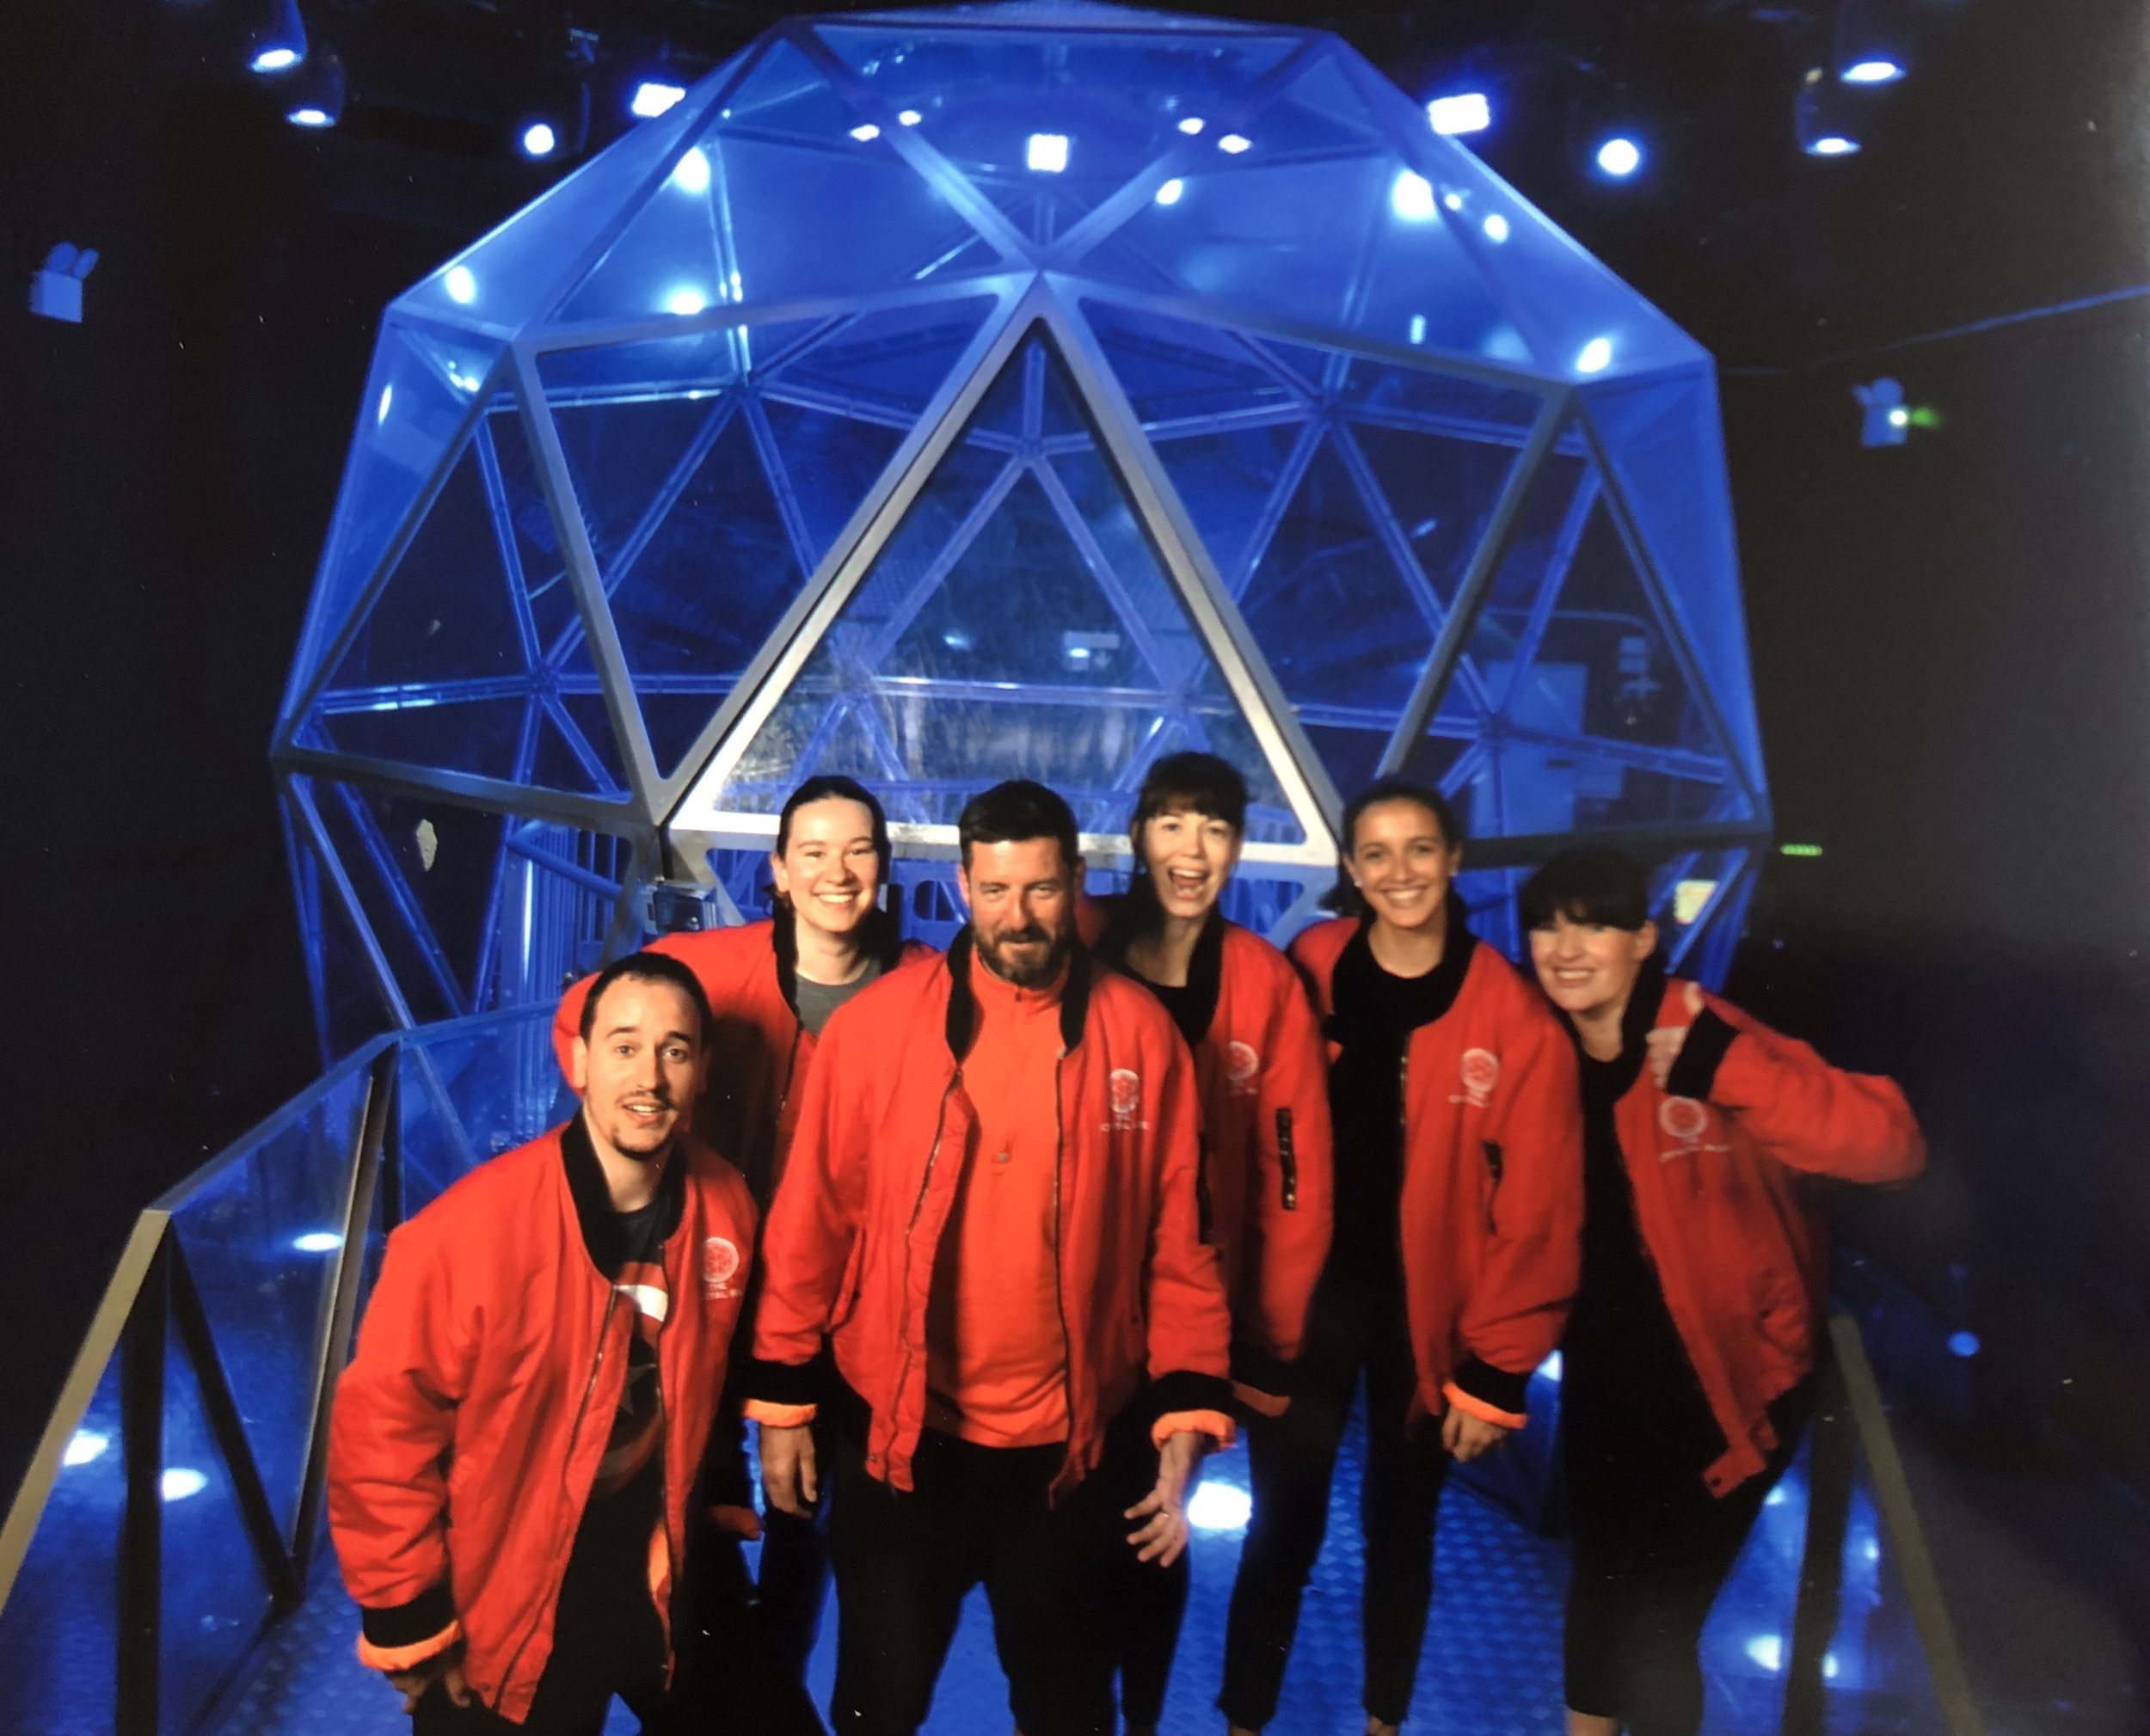 Crystal Maze photo - offical.jpg